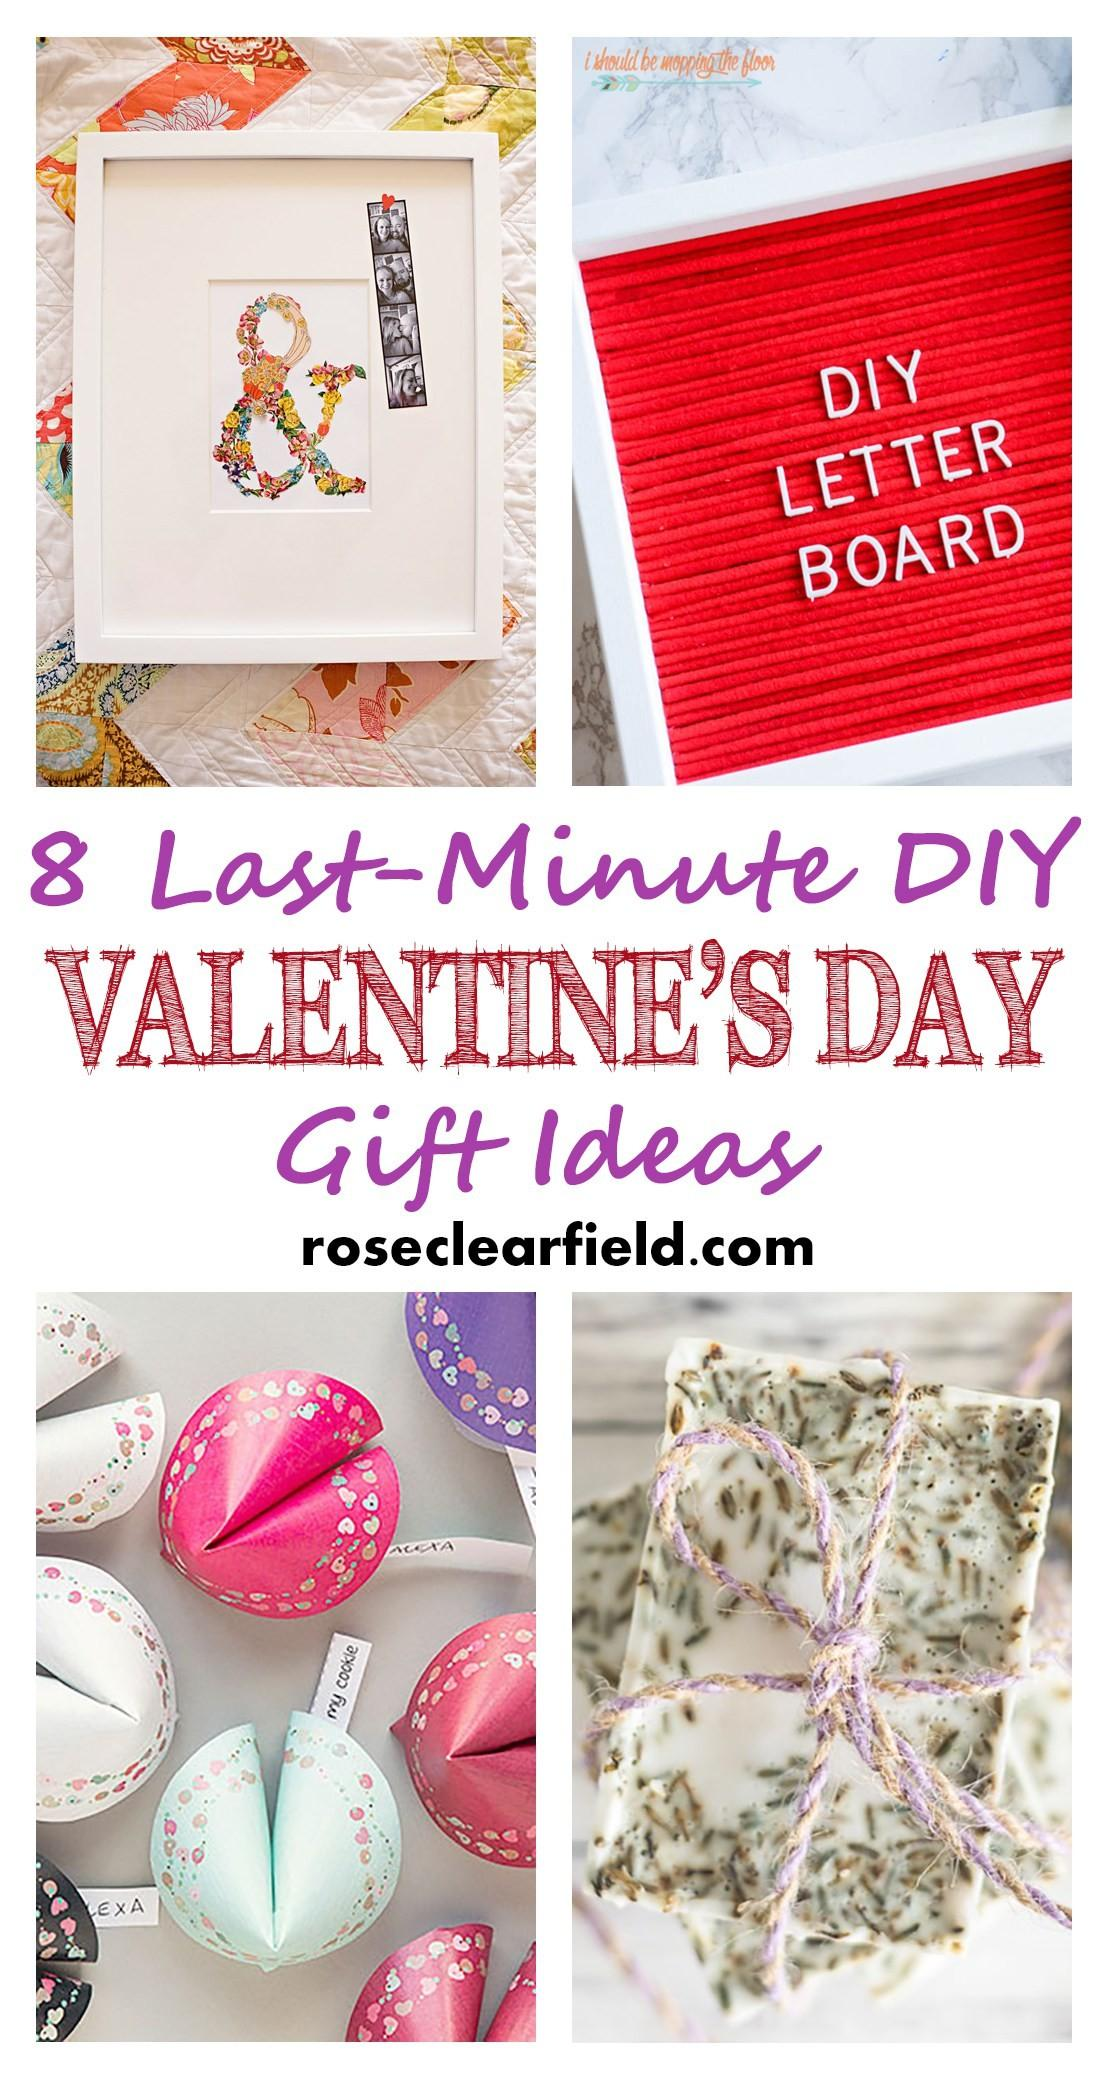 Last Minute Diy Valentine Day Gift Ideas Rose Clearfield